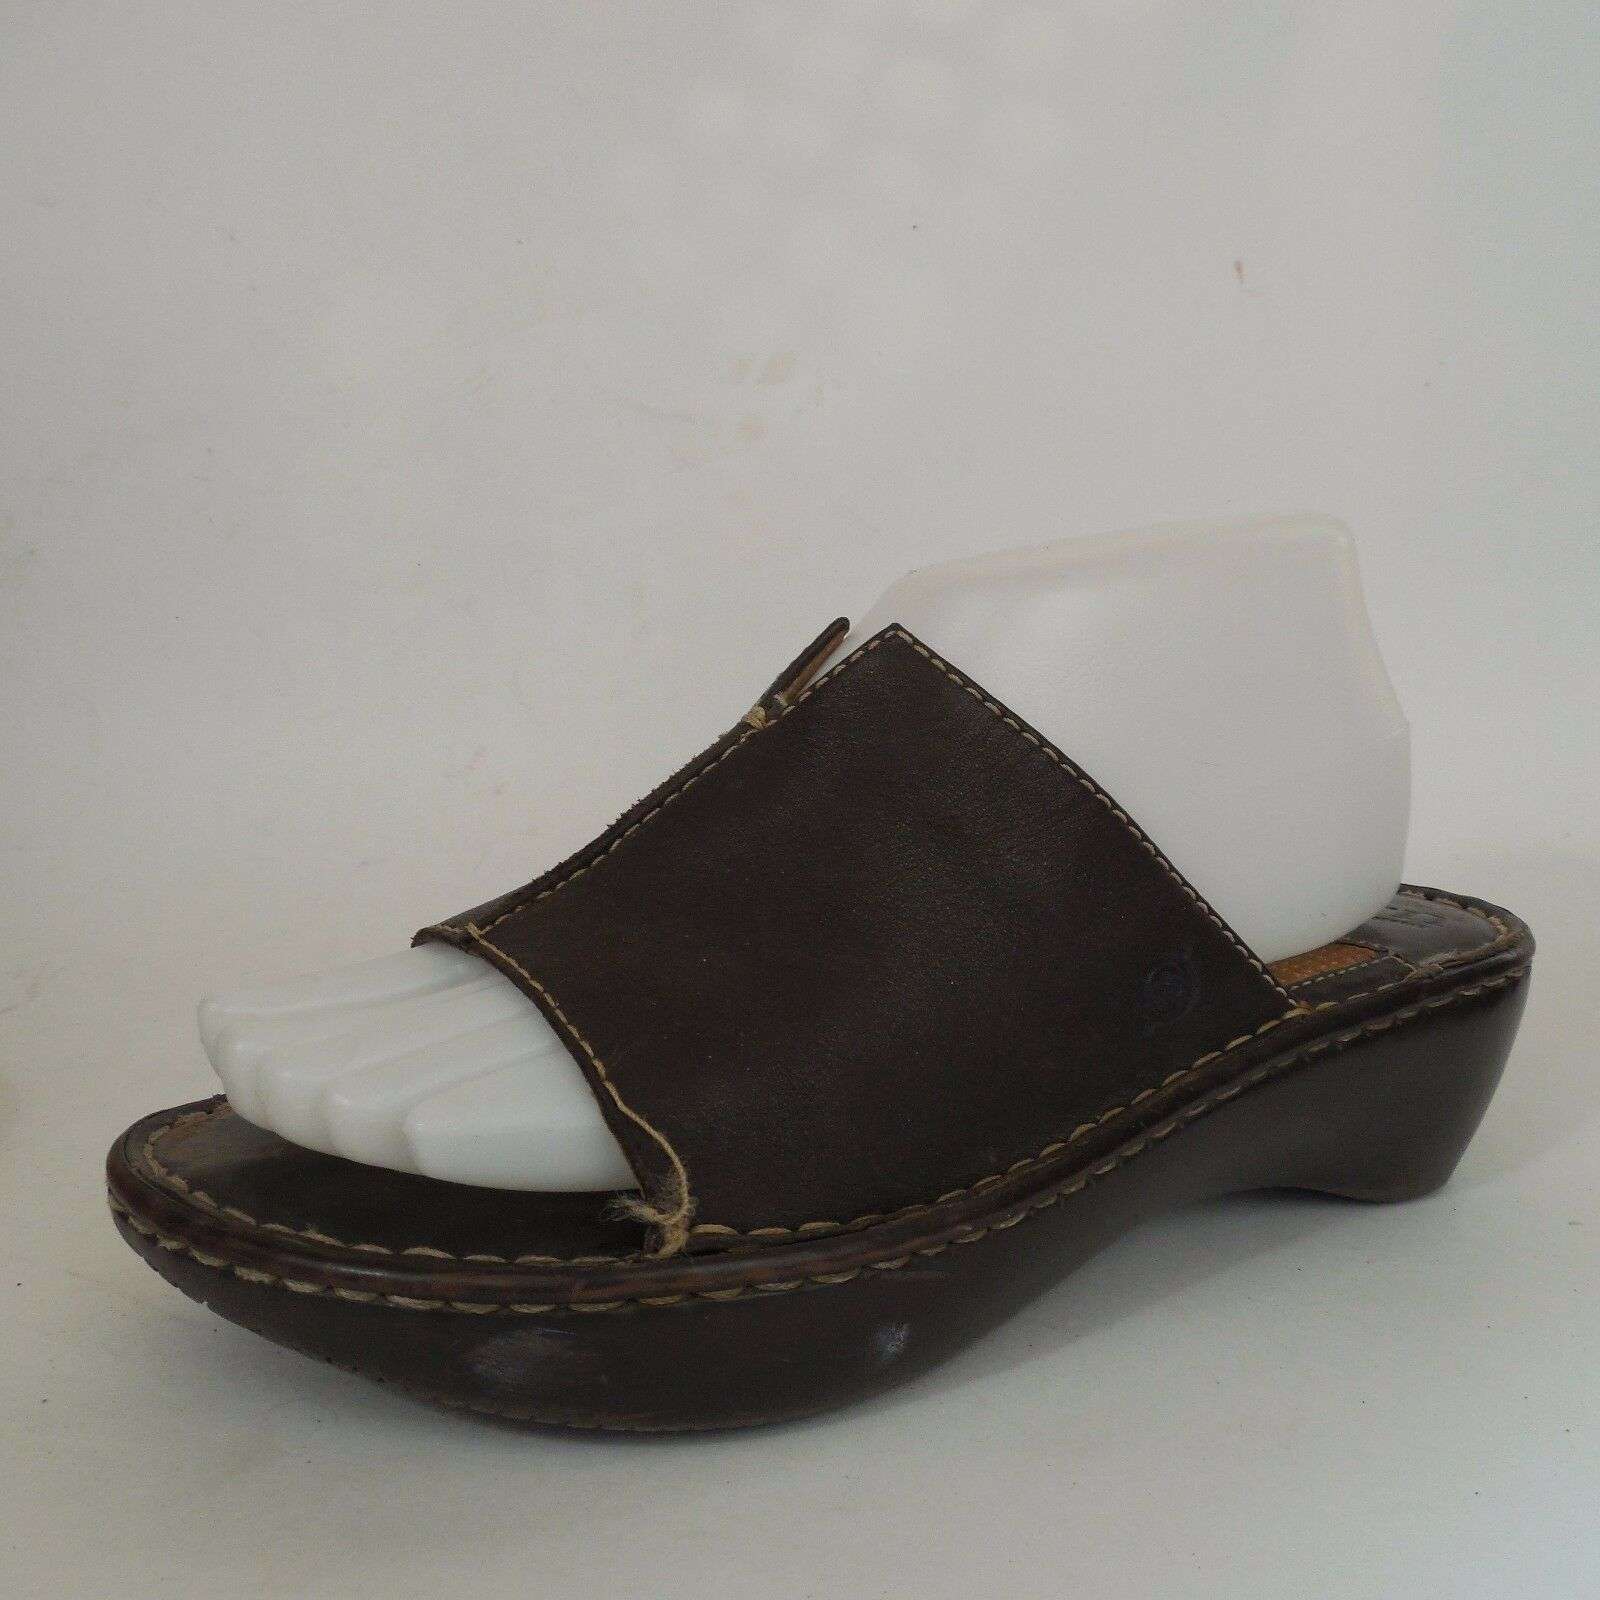 Born Wedges Womens Dark Brown Leather Slides High Heel Wedges Born Sandals Sz 8 Wide f4c7c7